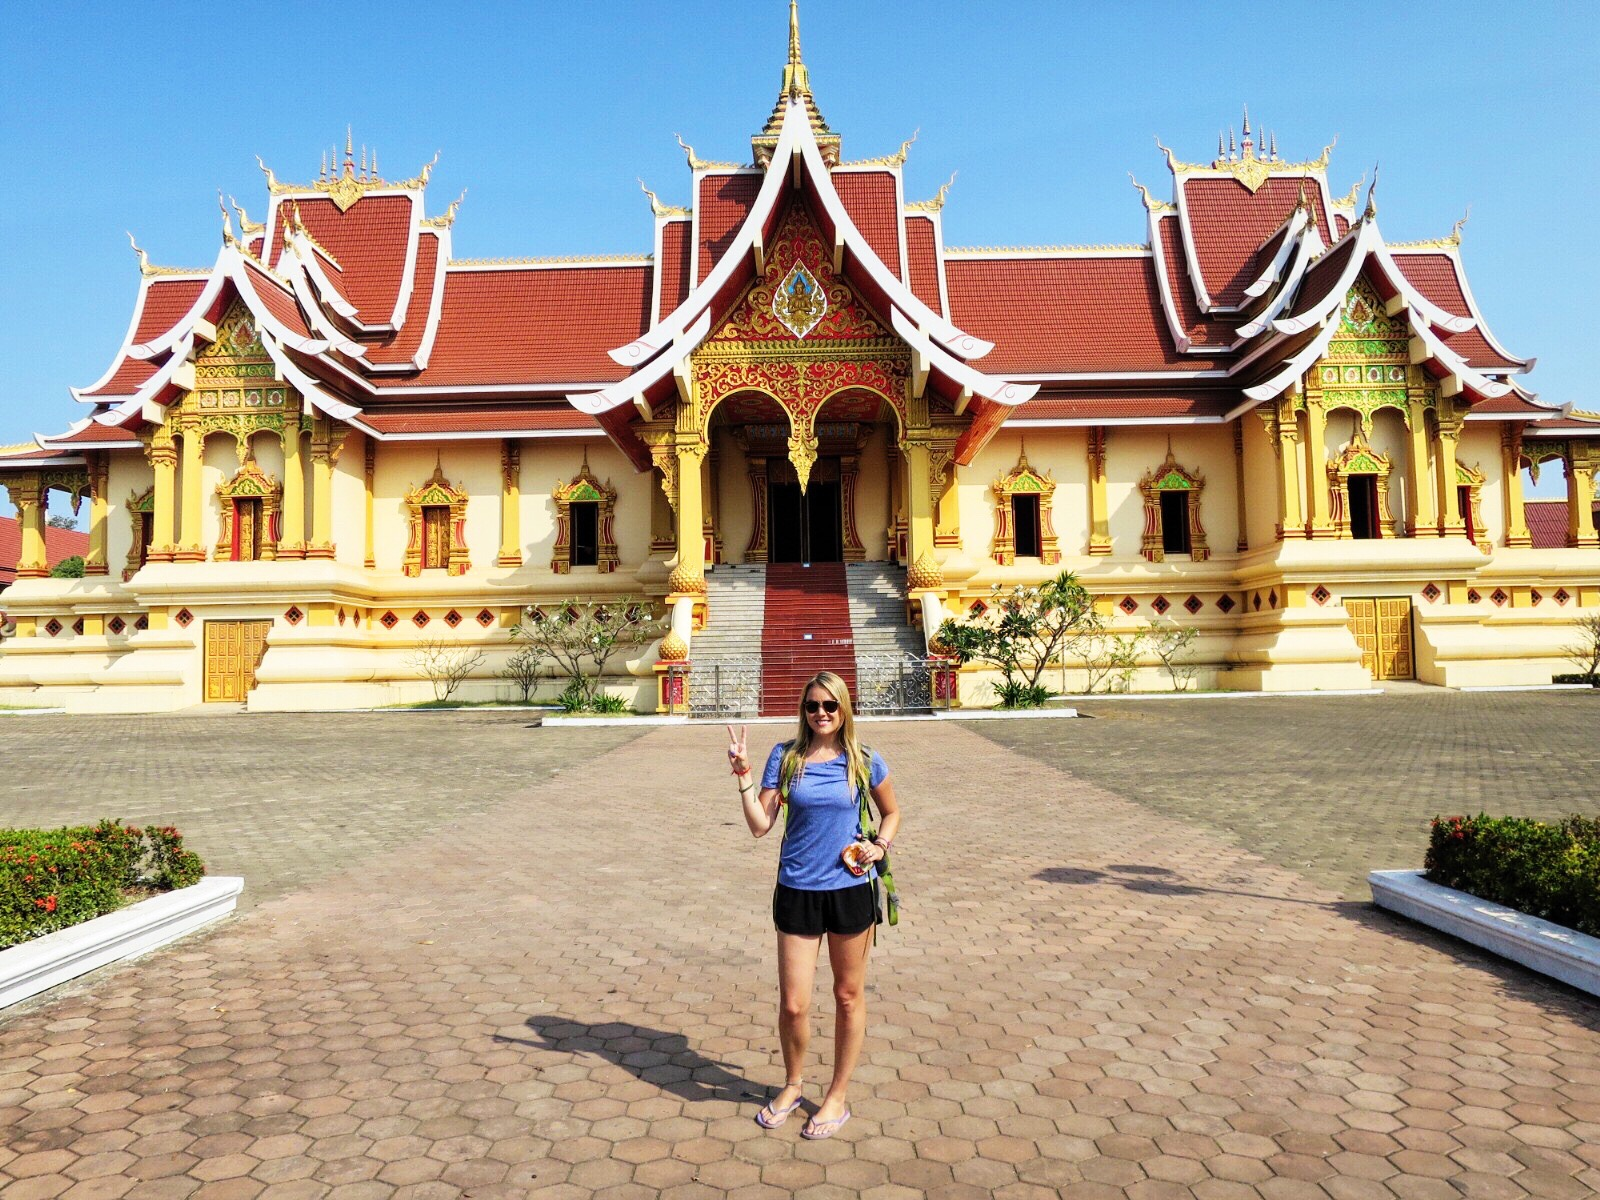 We rented bikes & rode to Pha That Luang, a Buddhist stupa in the capital of Laos.